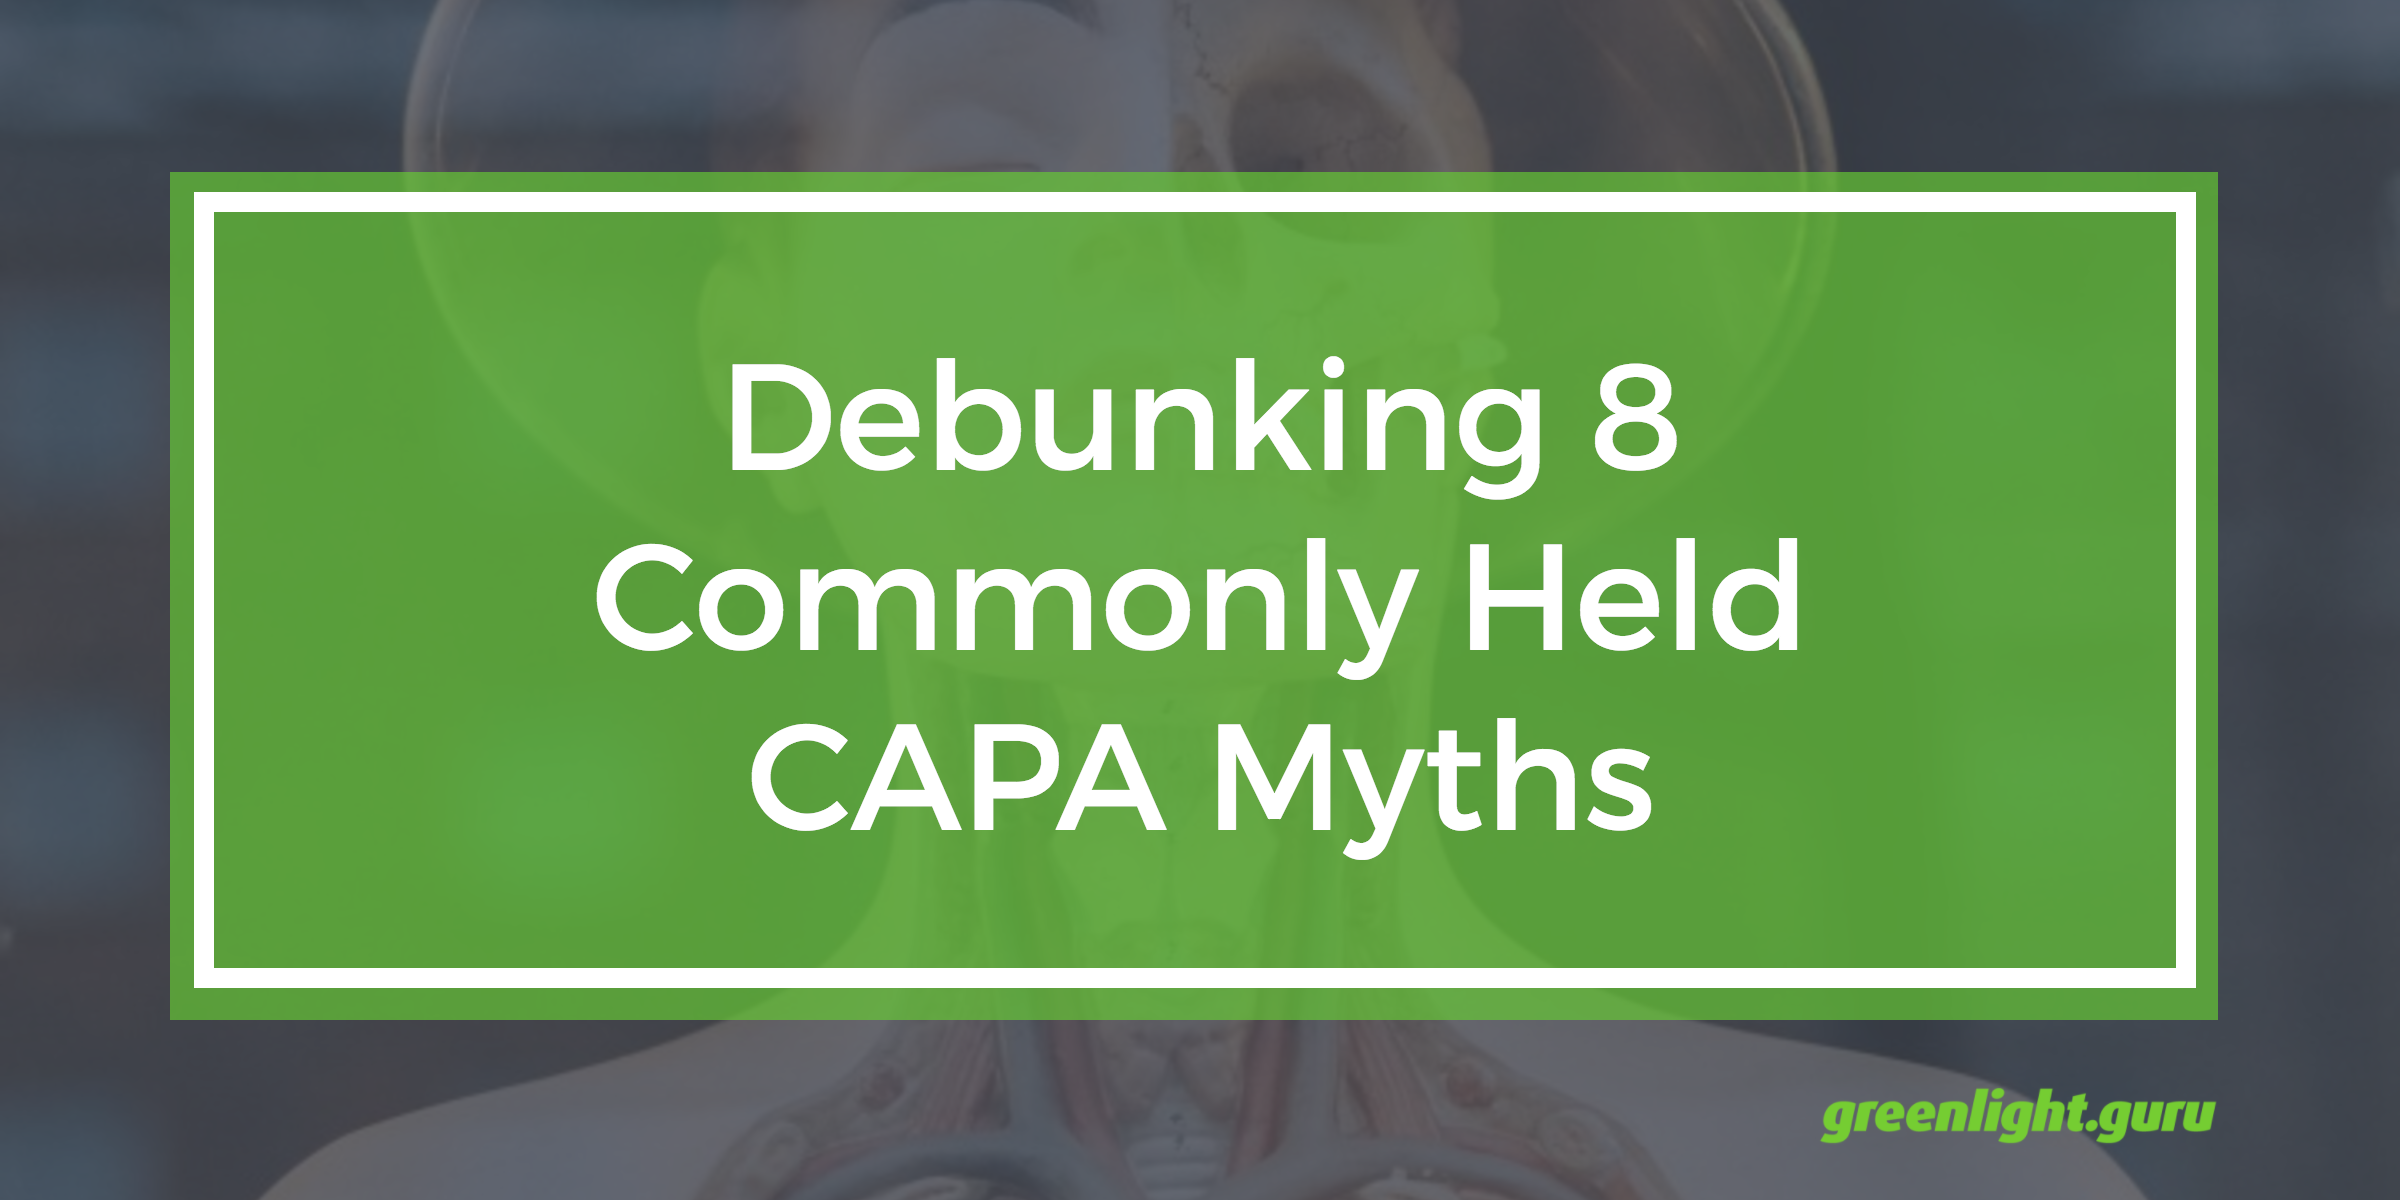 Debunking 8 Commonly Held CAPA Myths - Featured Image